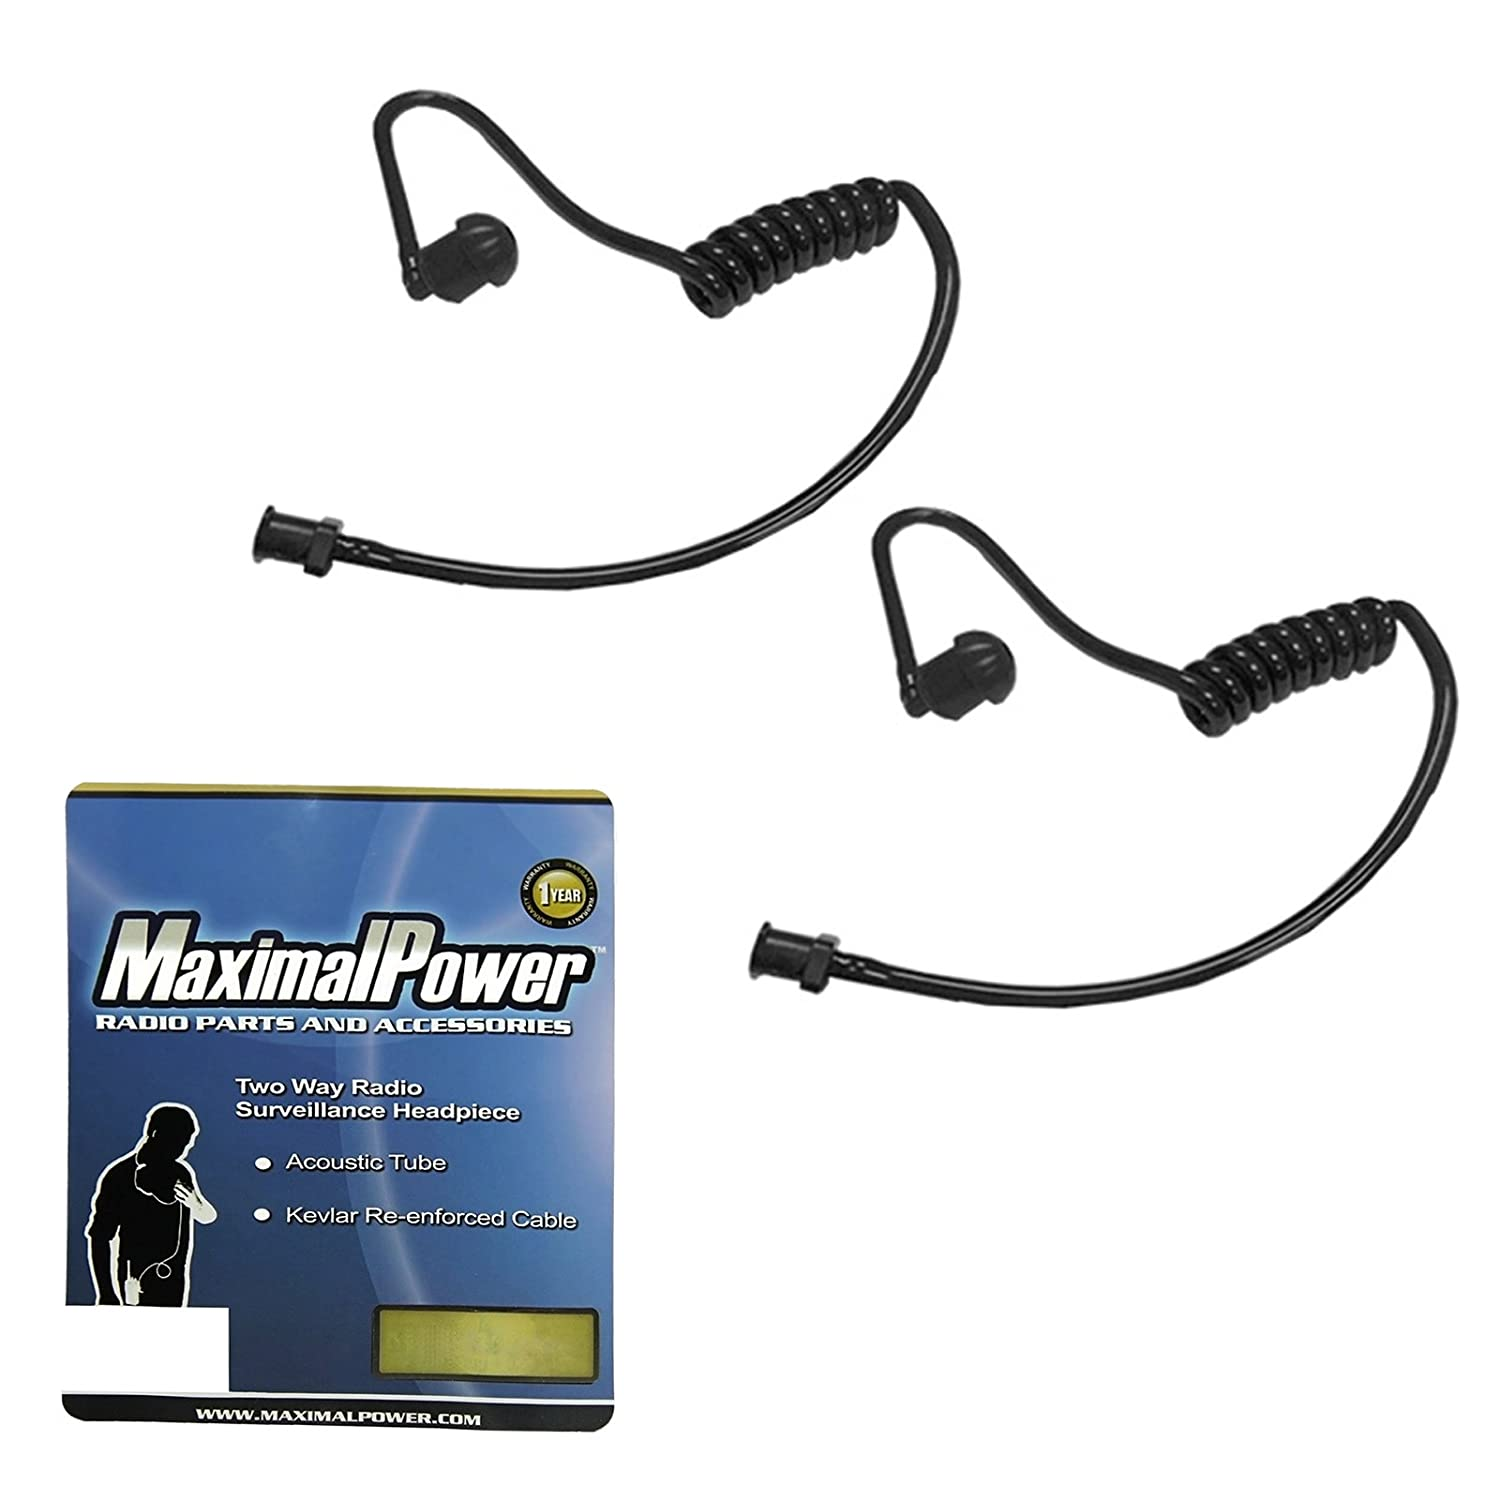 Pack of 2 FBI Style Black Twist On Replacement Acoustic Tube for Two-Way Radio Headsets by MaximalPower